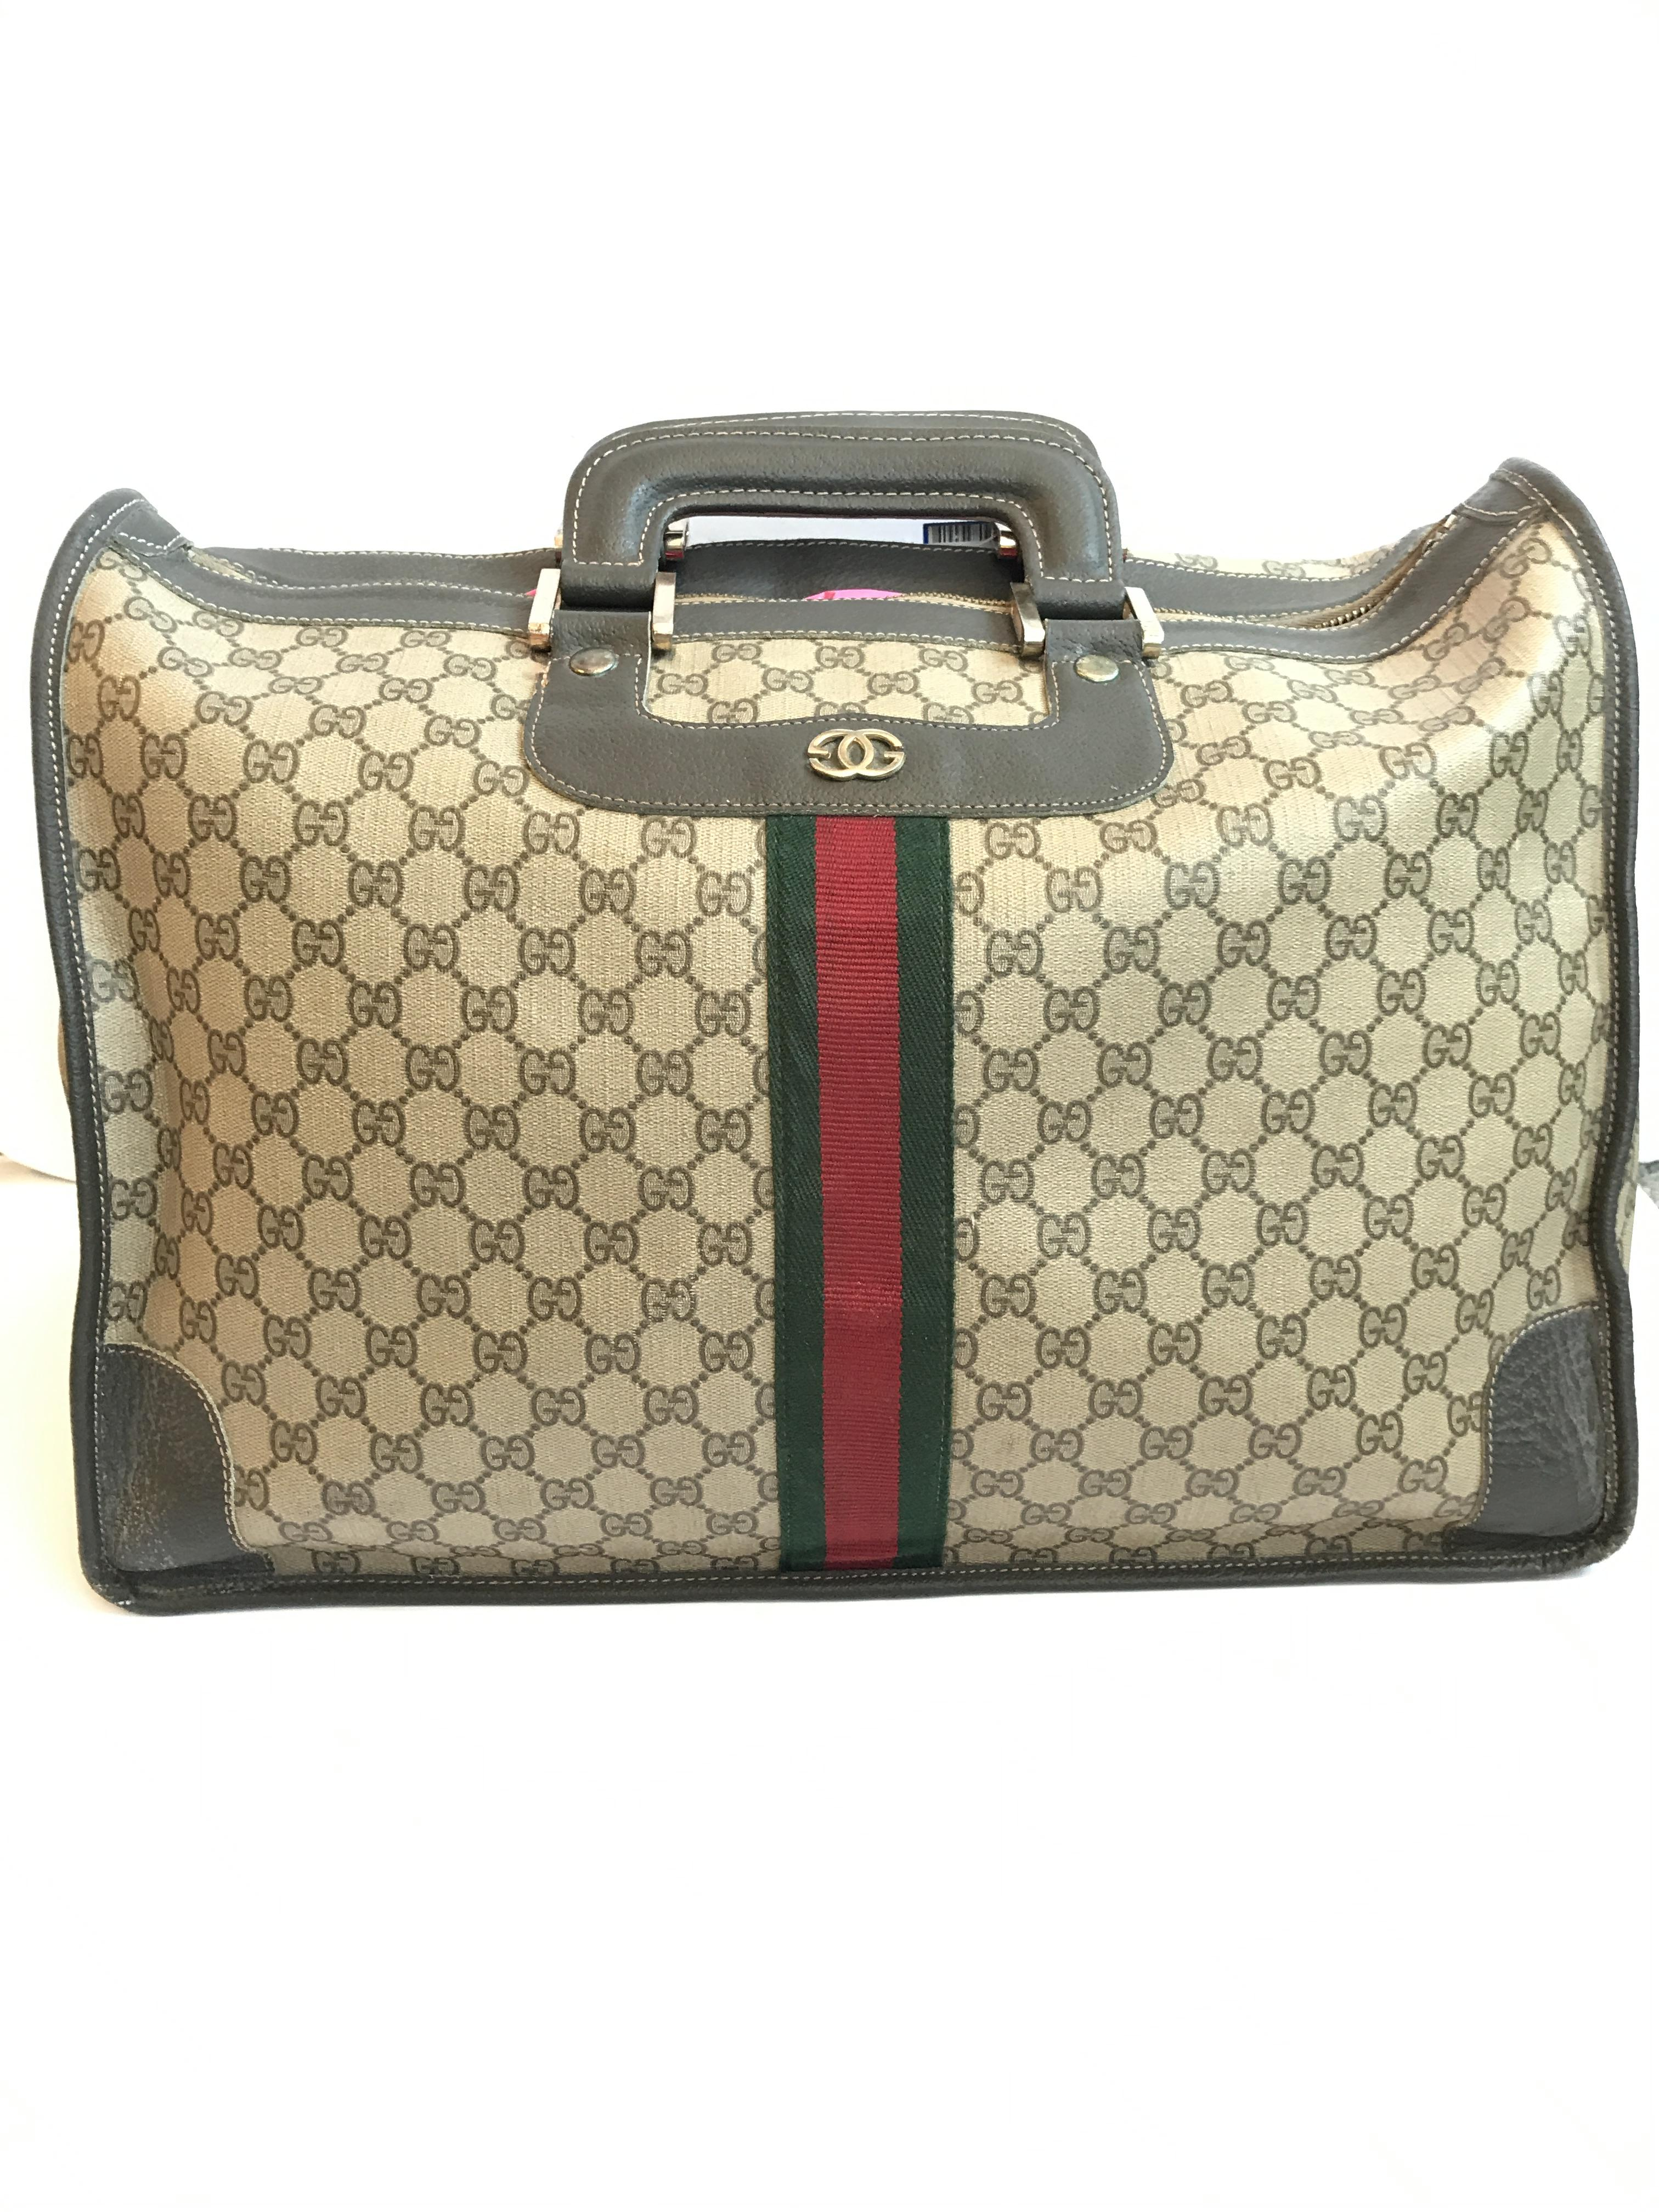 Gucci vintage Purses, Handbags Price: $198.99